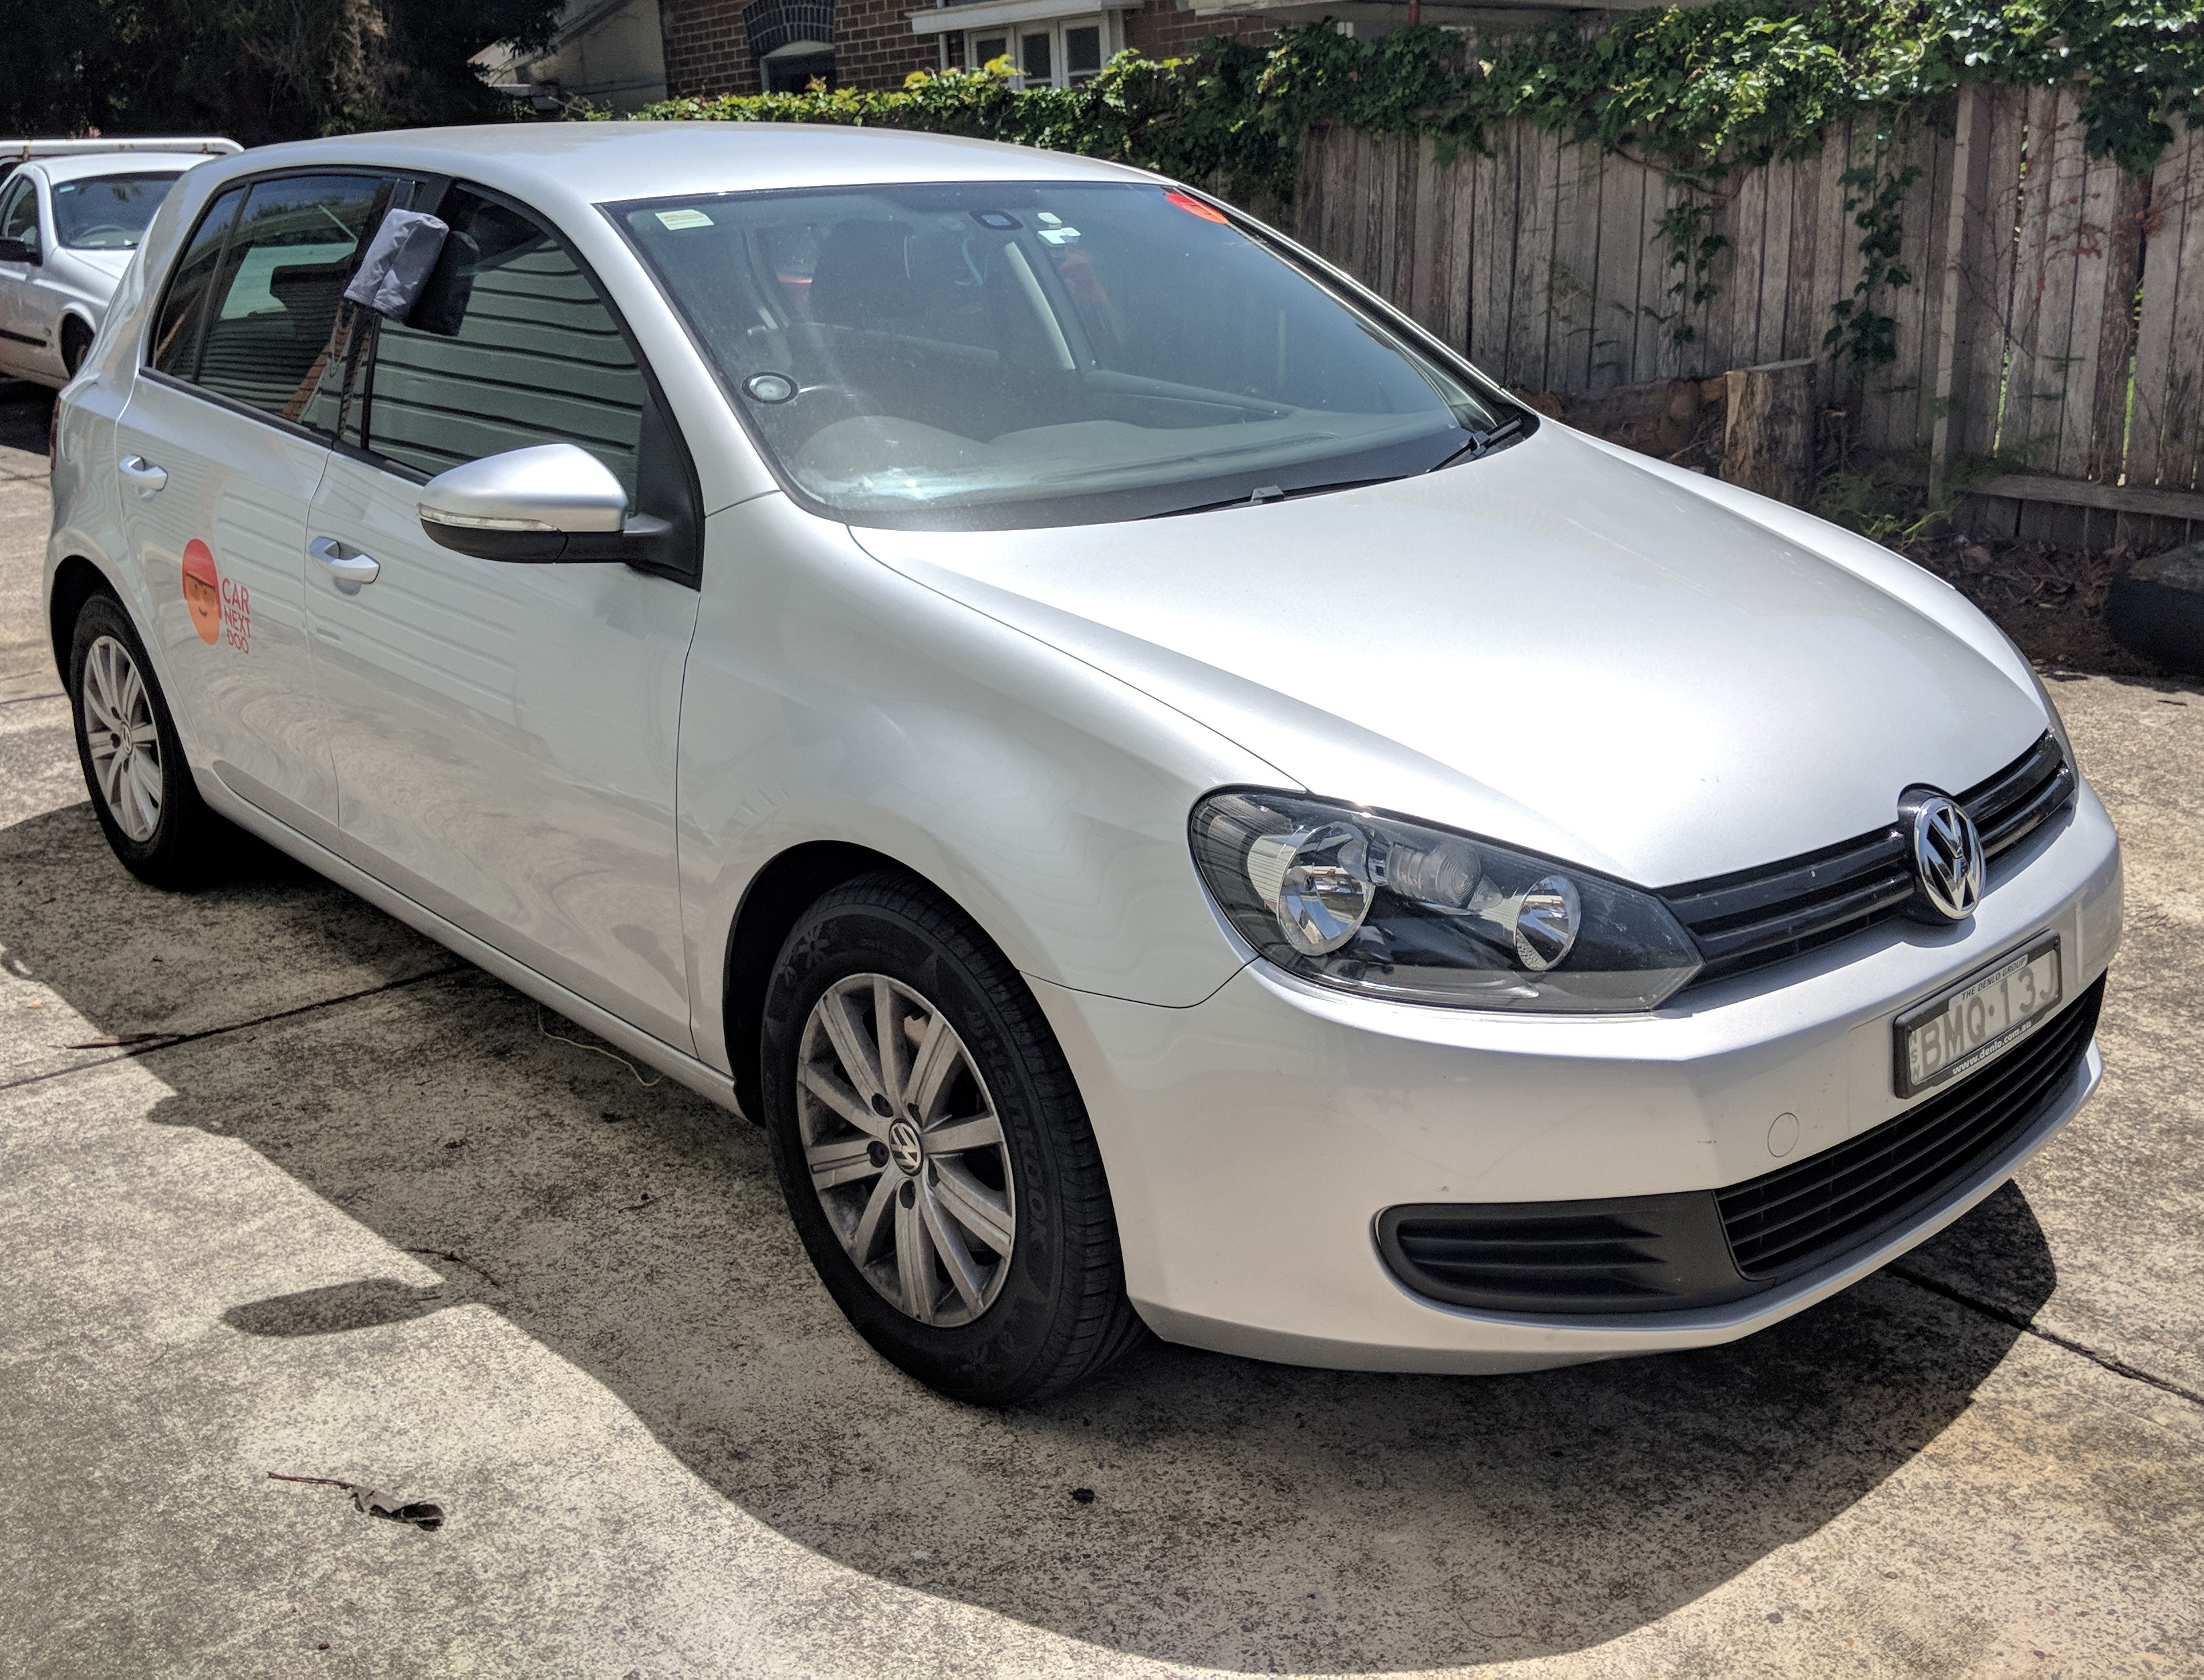 Picture of Susan's 2010 Volkswagen Golf